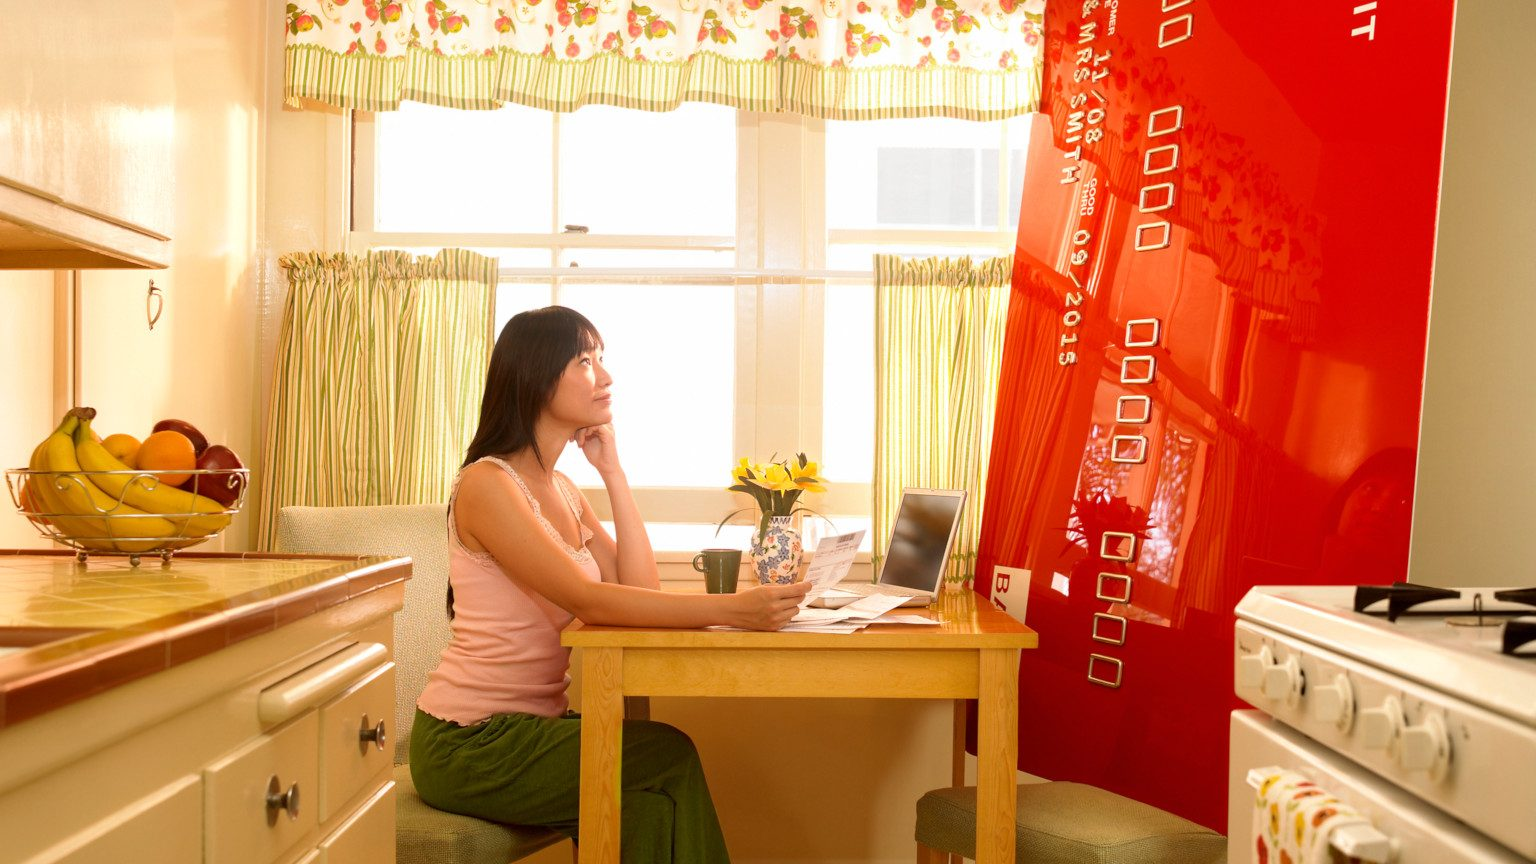 Asian woman sitting in her kitchen looking up at a giant credit card